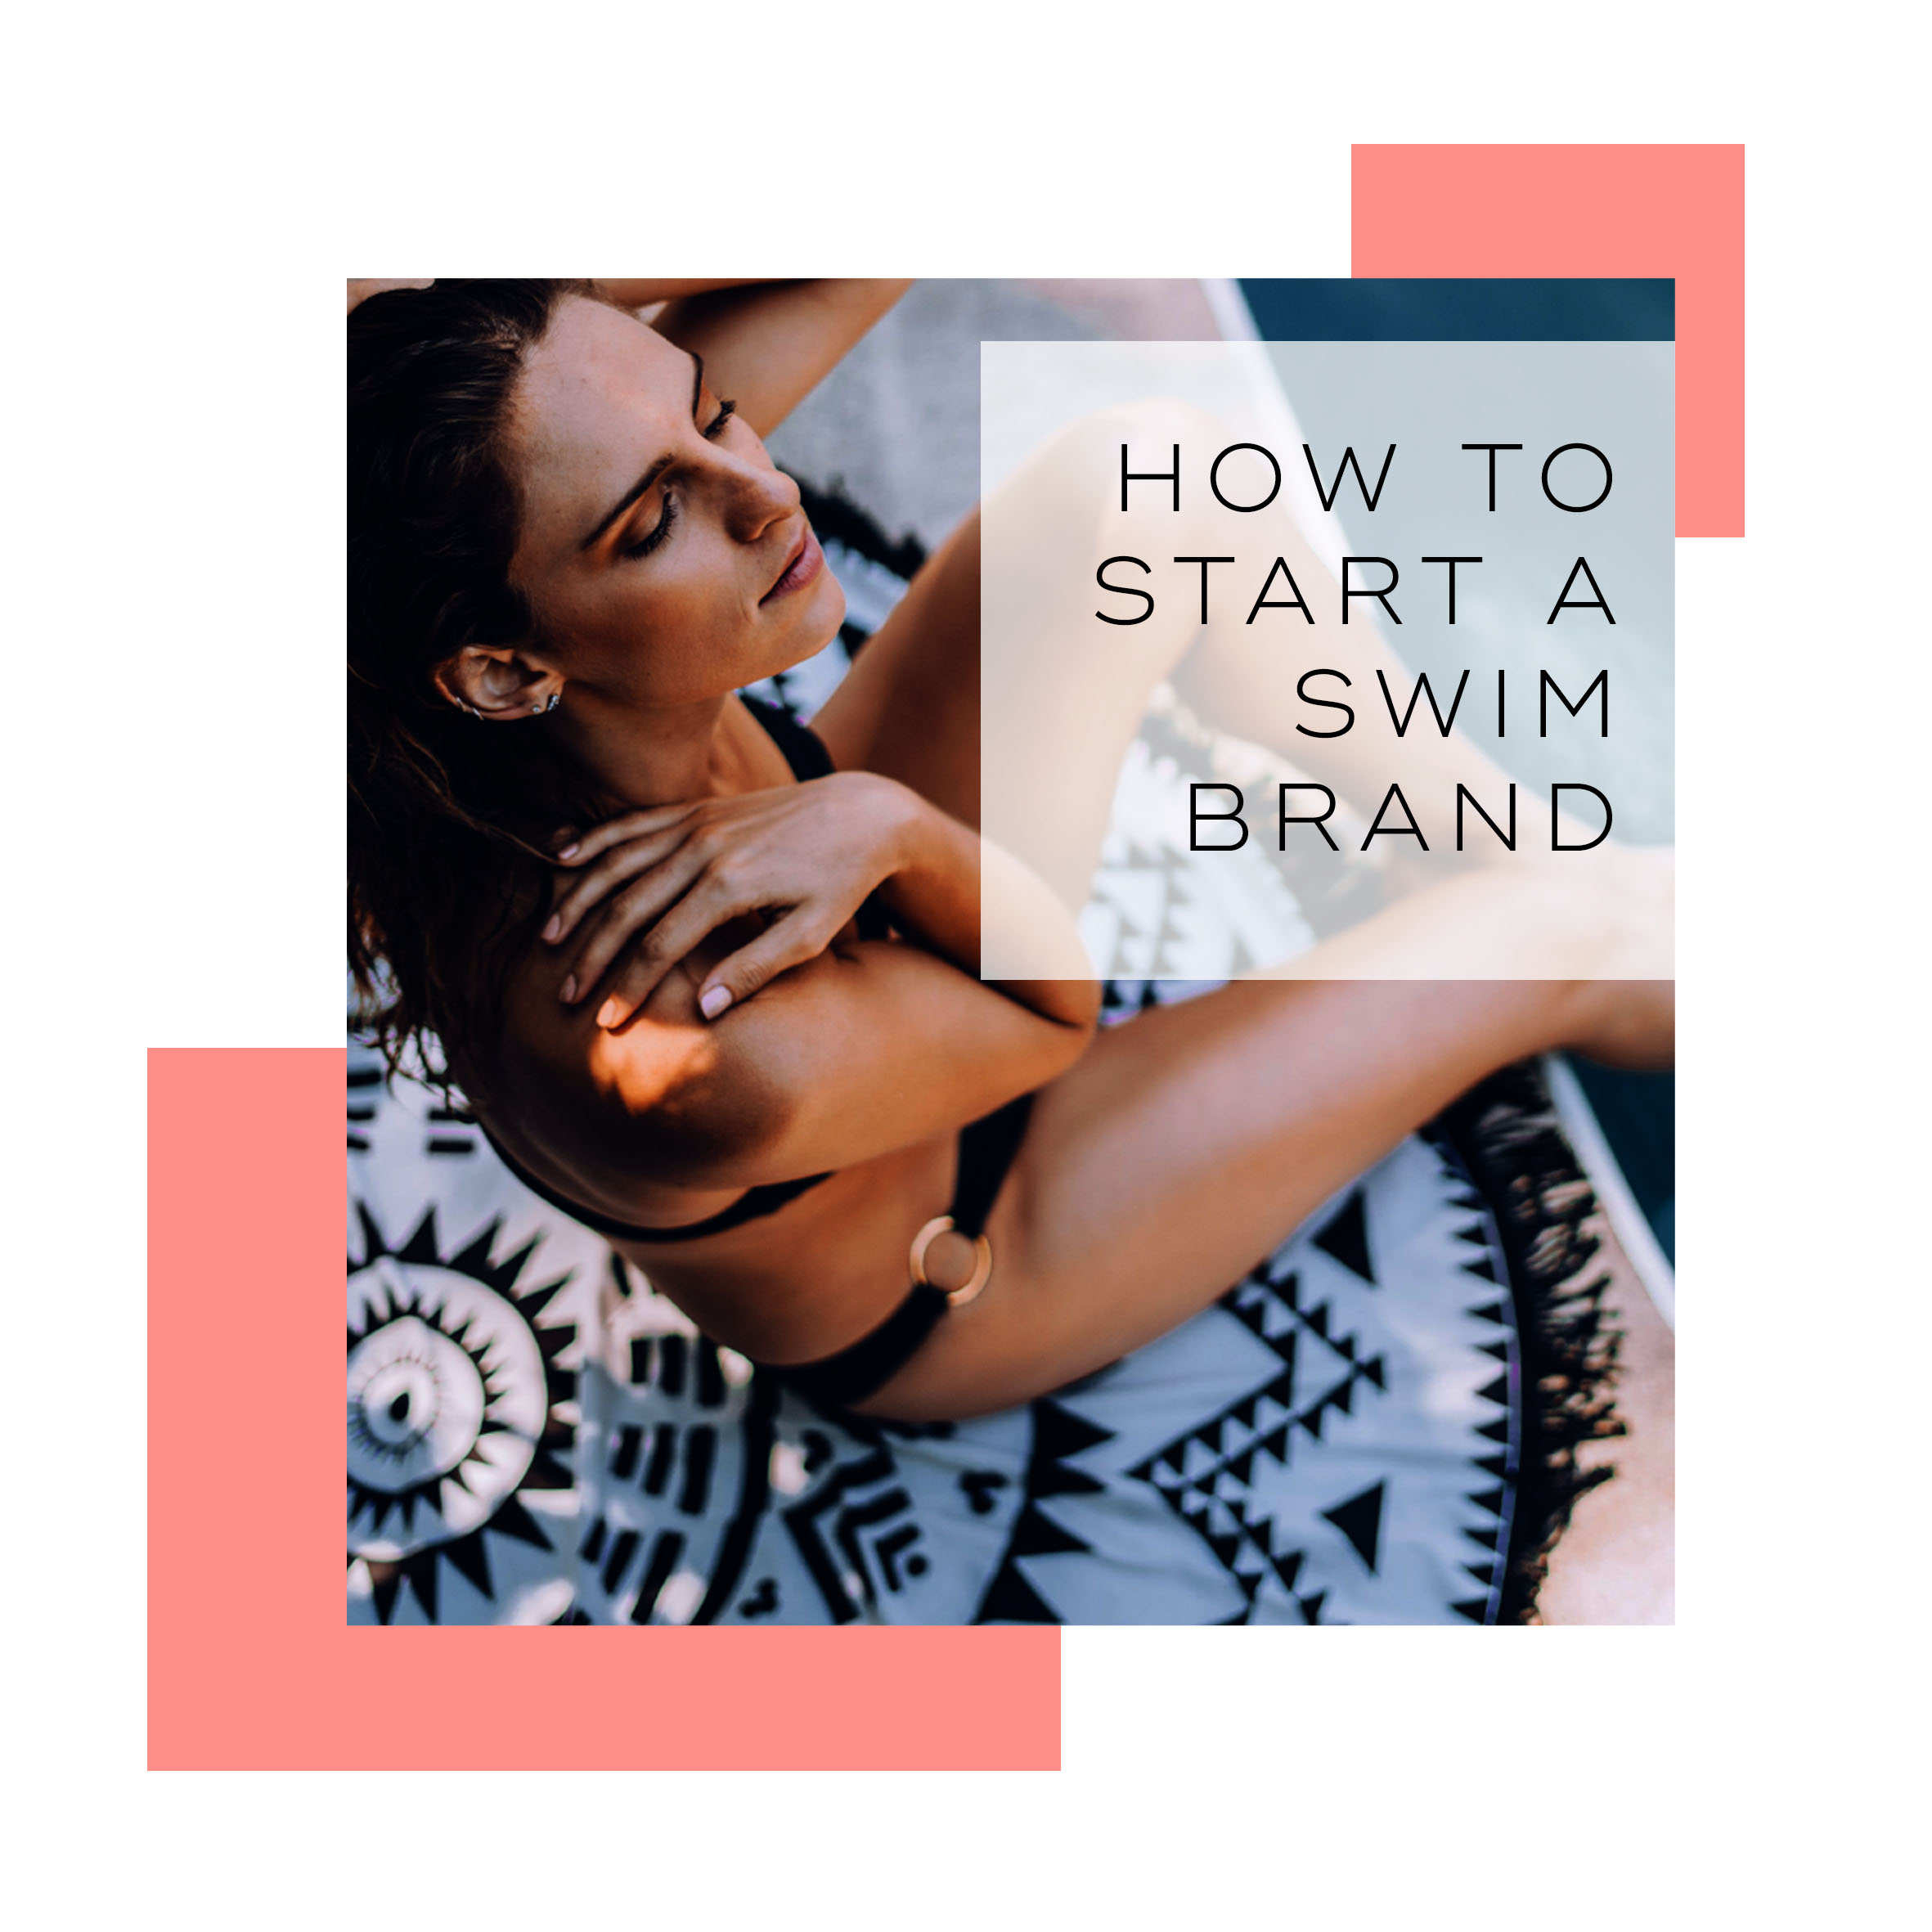 How to Start a Swim Brand